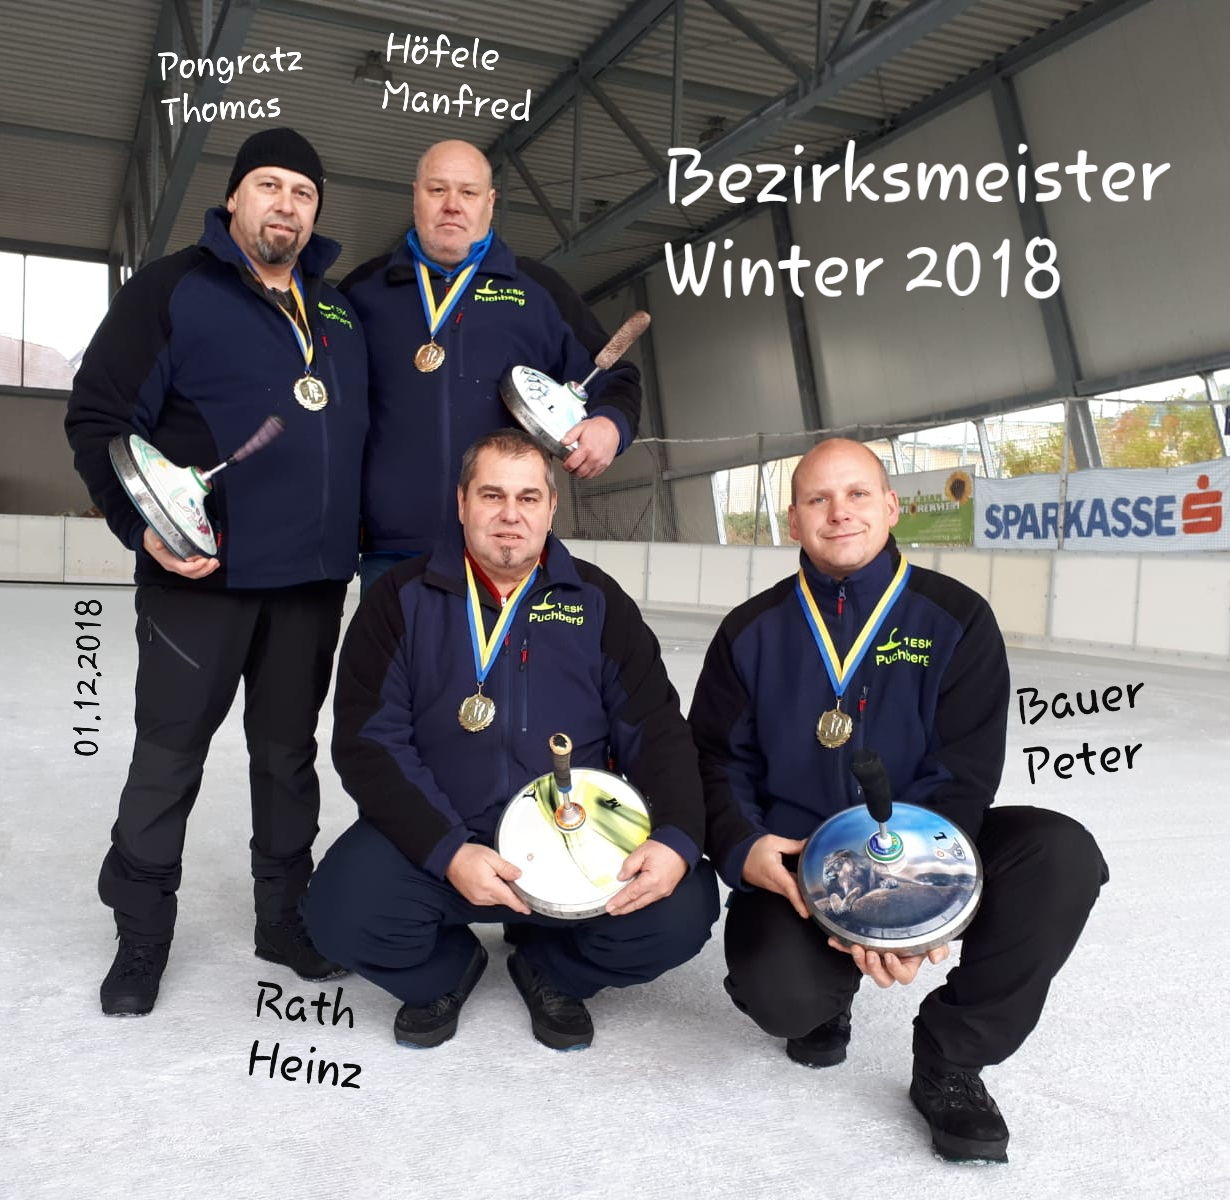 bezirksmeister-winter-2018